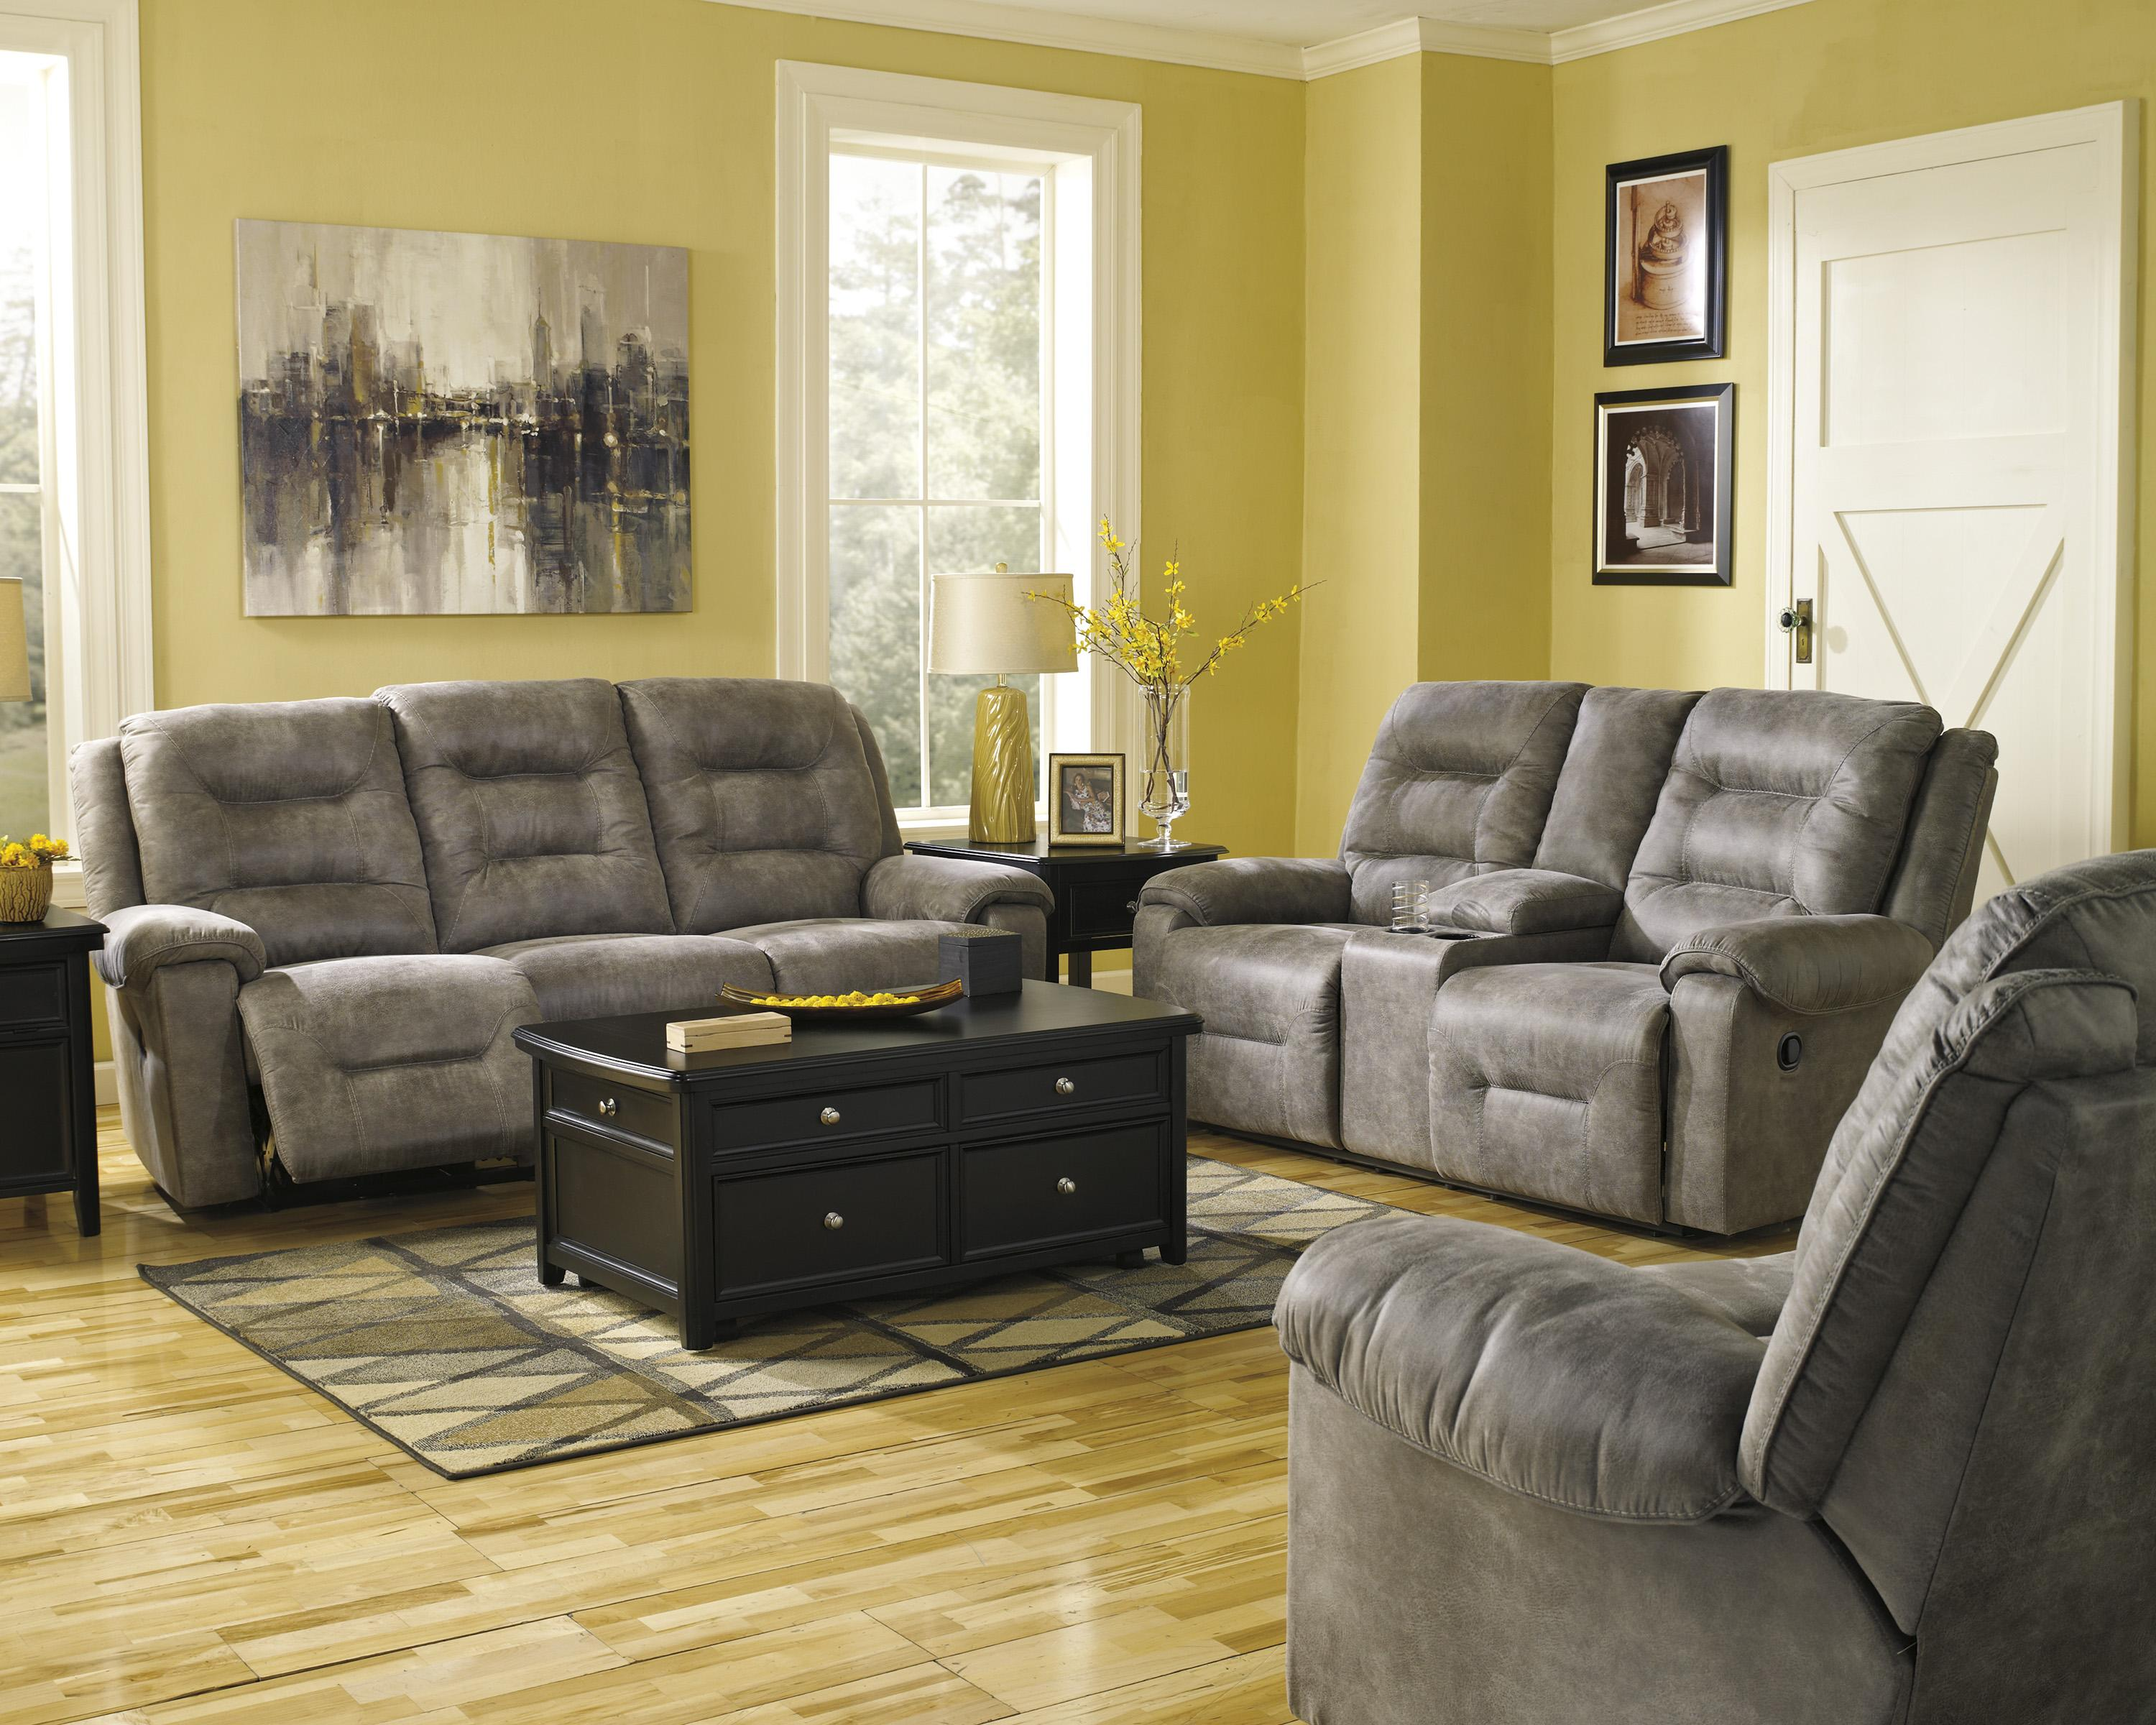 Signature Design by Ashley Rotation - Smoke Contemporary Power Reclining Loveseat w/Console - Wayside Furniture - Reclining Love Seat & Signature Design by Ashley Rotation - Smoke Contemporary Power ... islam-shia.org